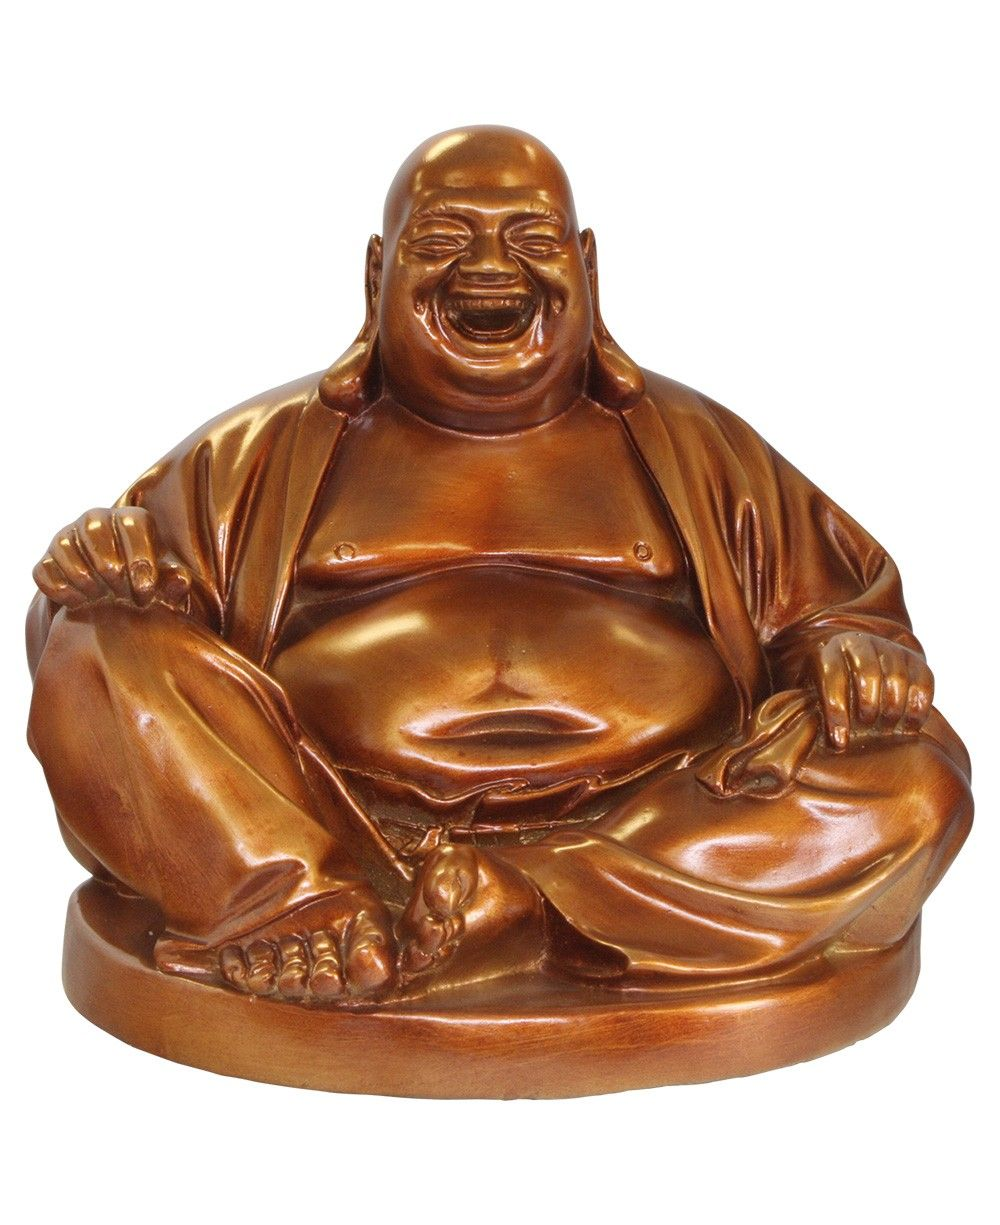 Bronze finish Happy Buddha statue made in Vietnam, available at BuddhaGroove.com.